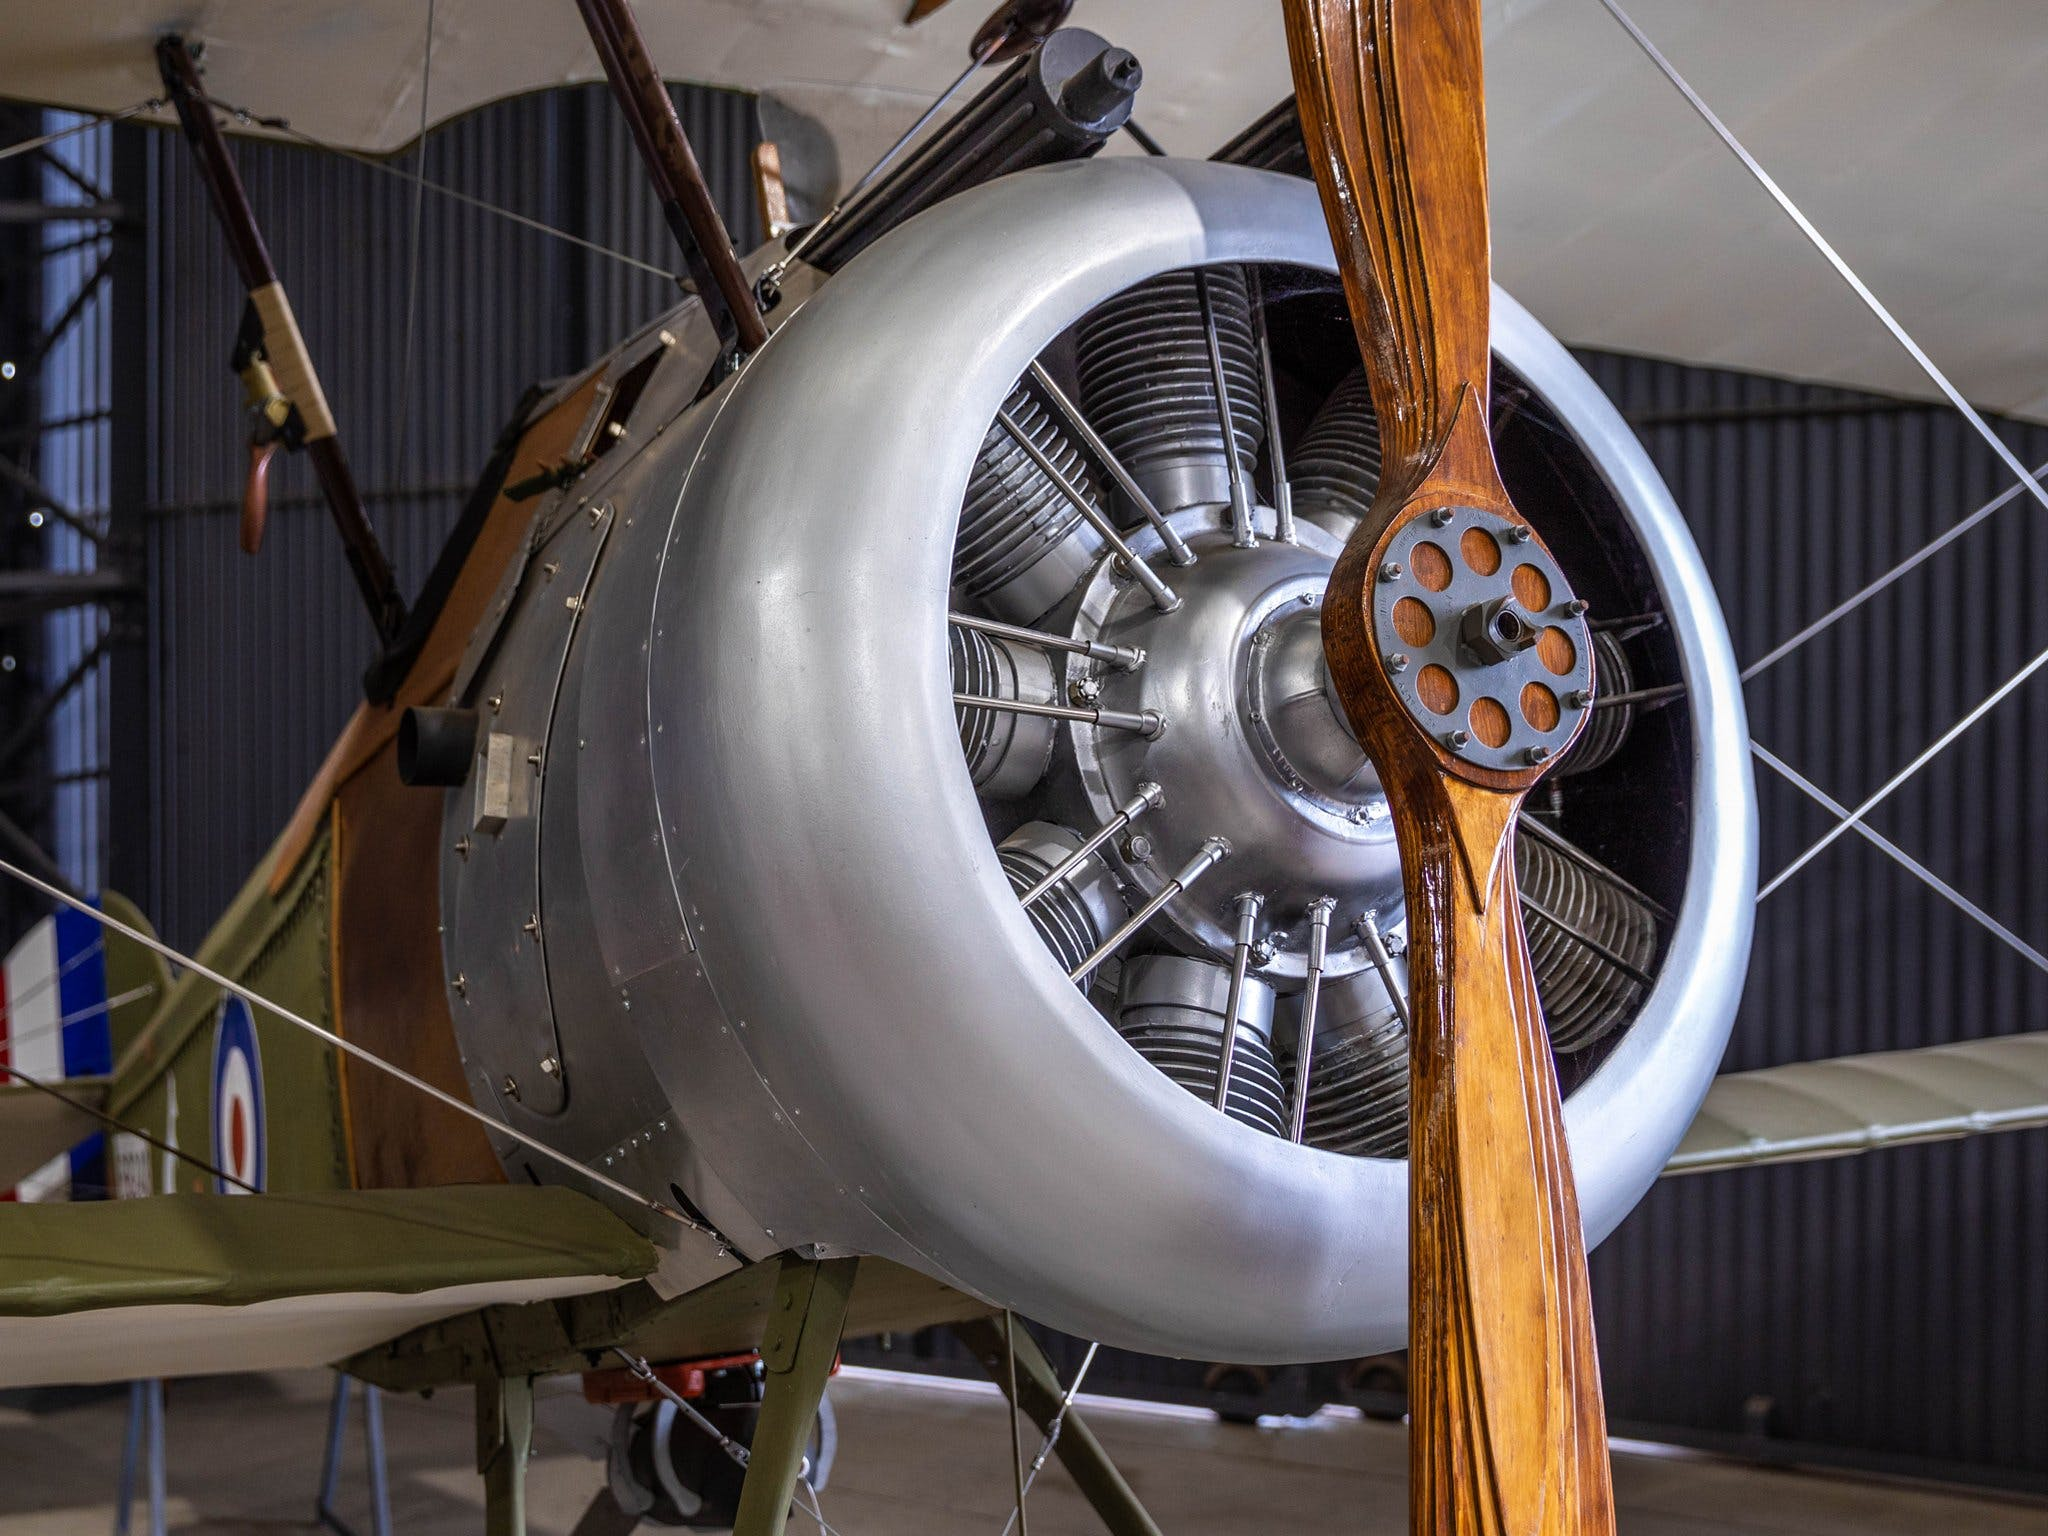 RAAF Amberley Aviation Heritage Centre - Geraldton Accommodation